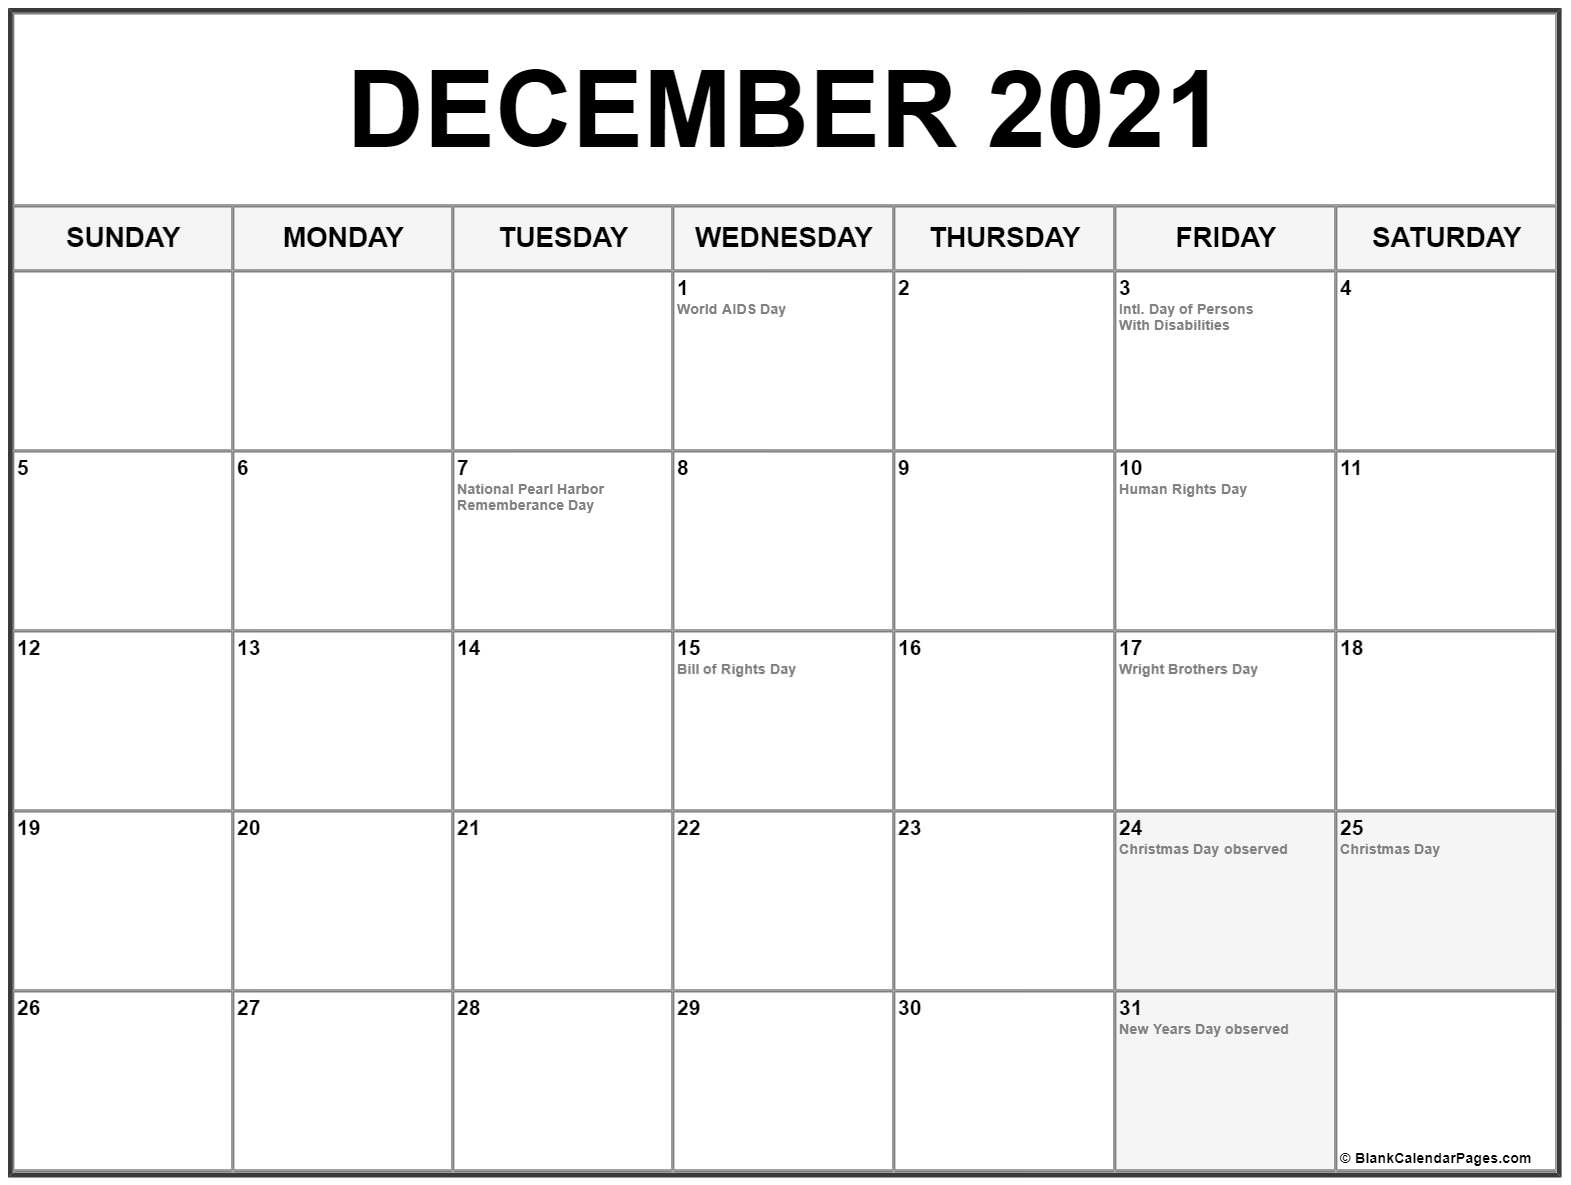 December 2020 Calendar With Holidays Collection of December 2020 calendars with holidays